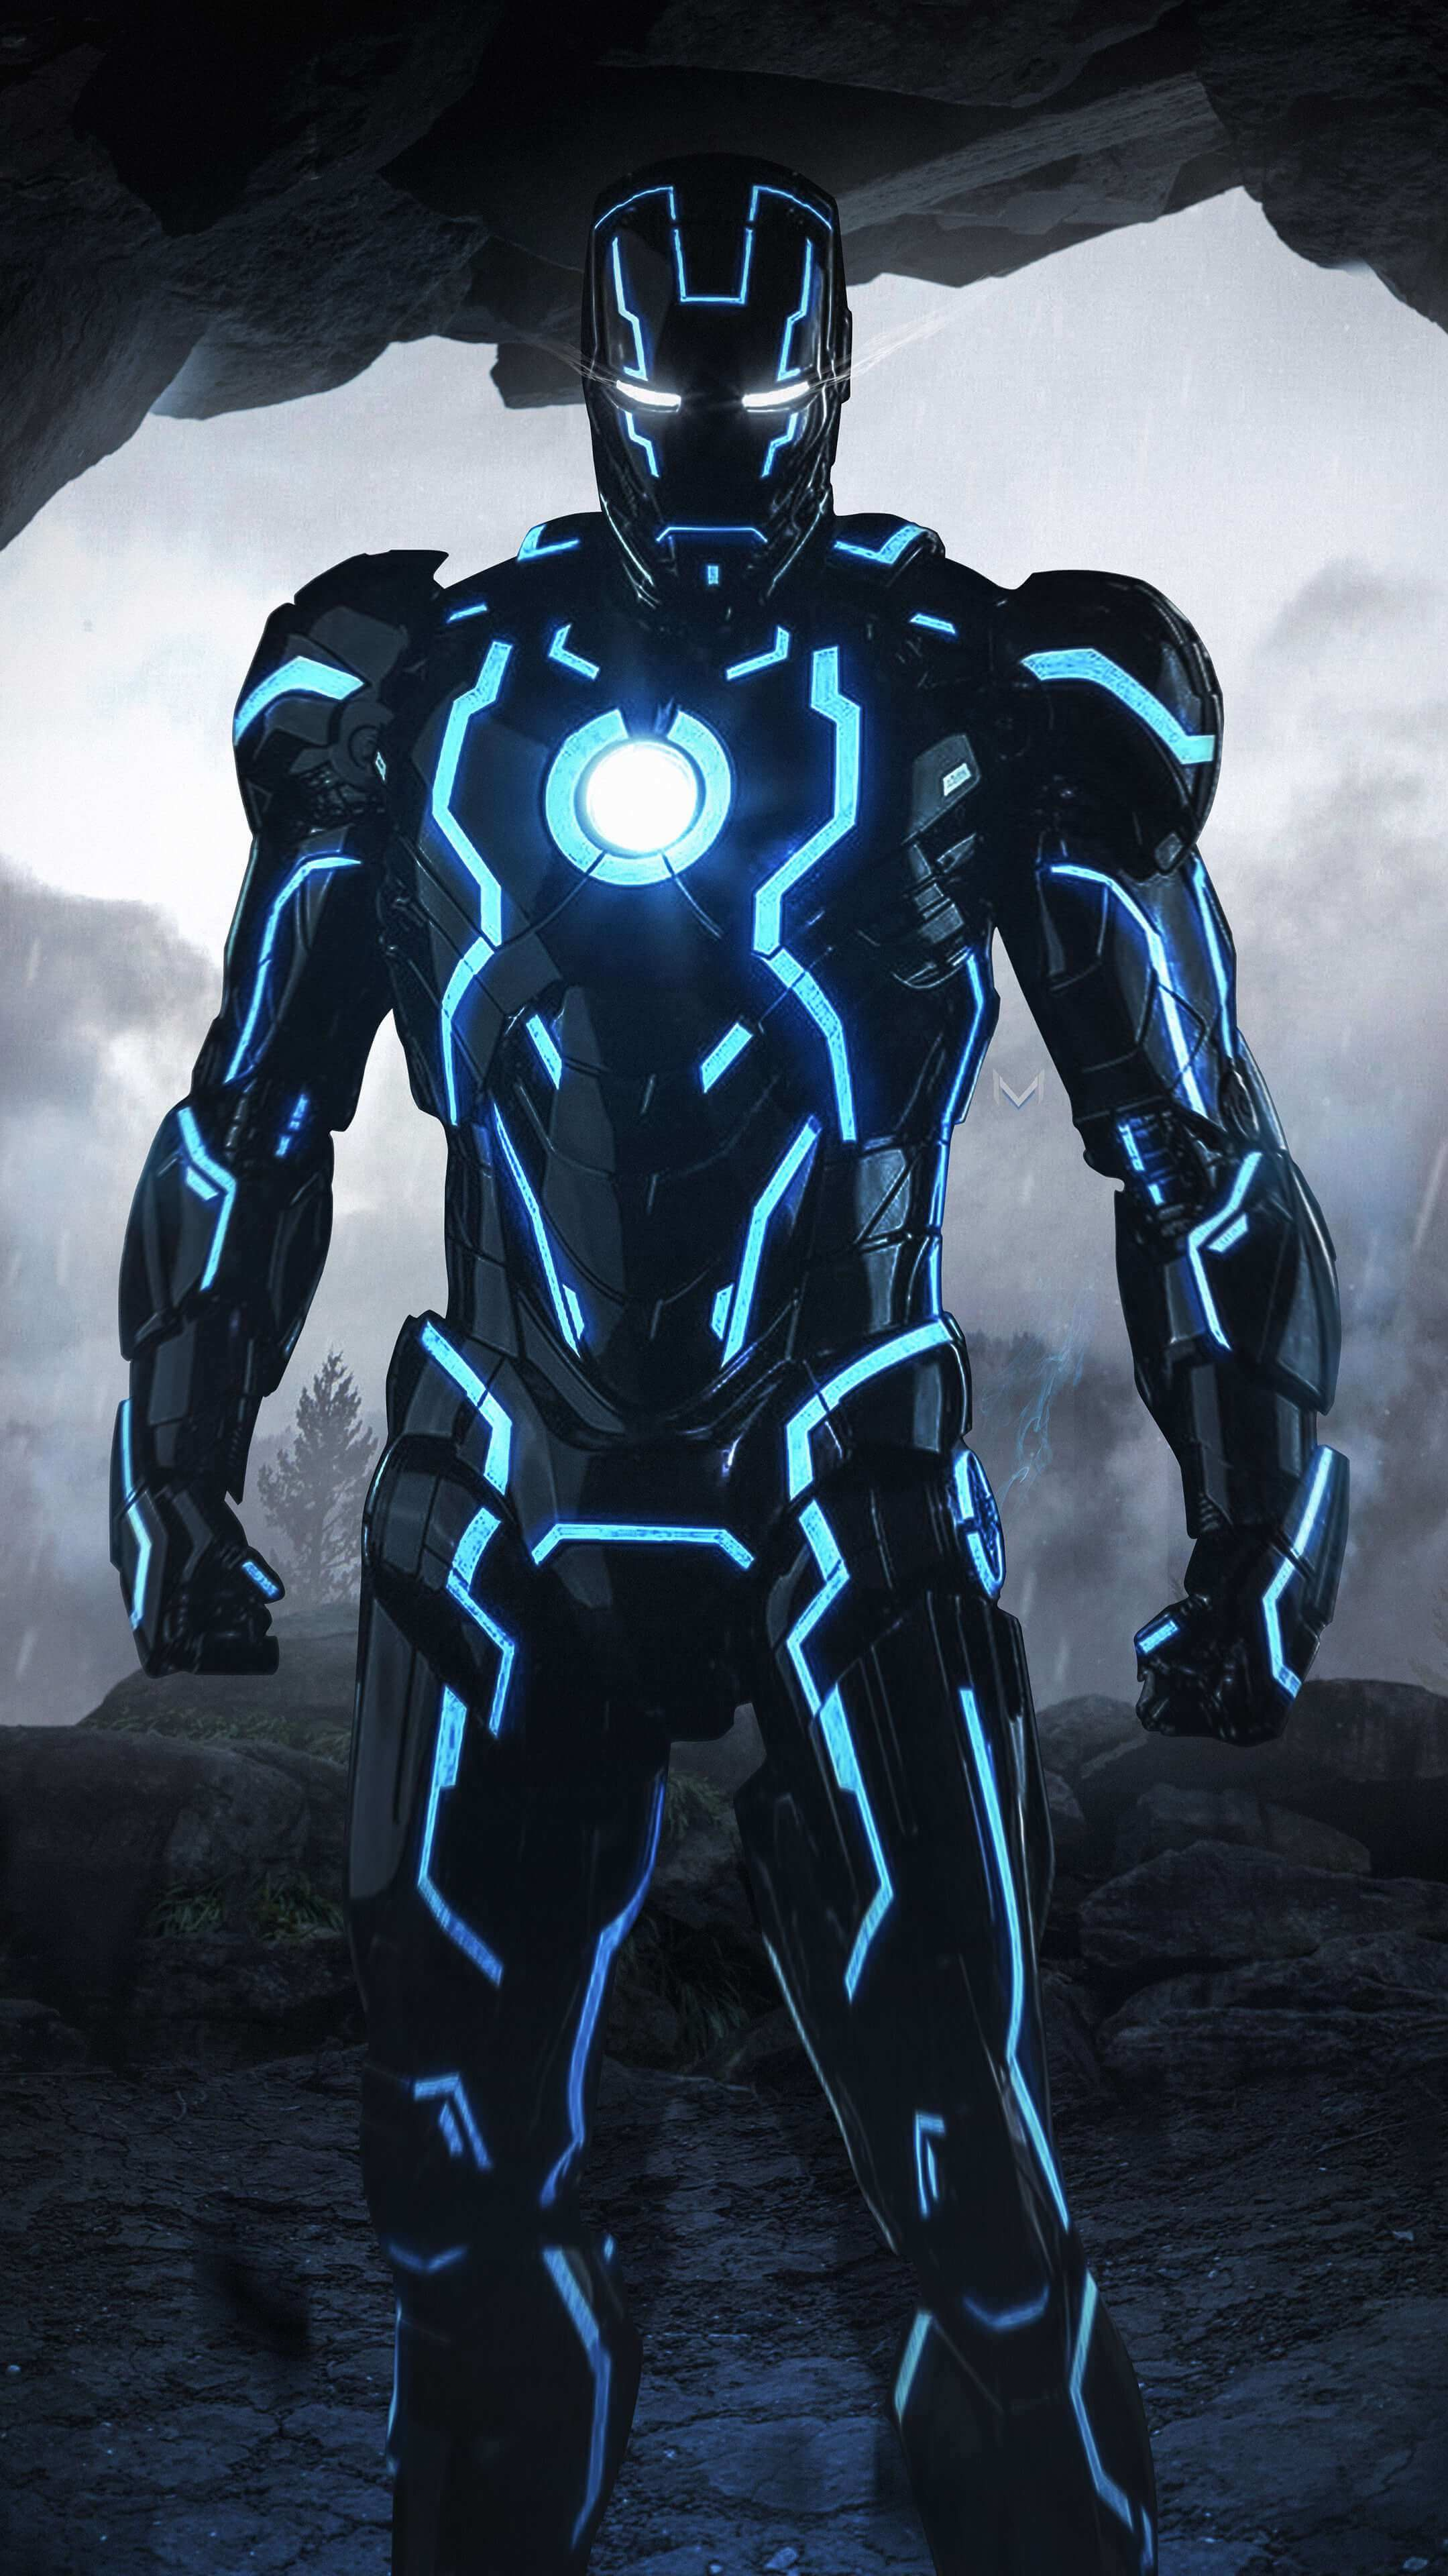 Iron man Neon Suit iPhone Wallpaper marvel Iron man wallpaper 2159x3840